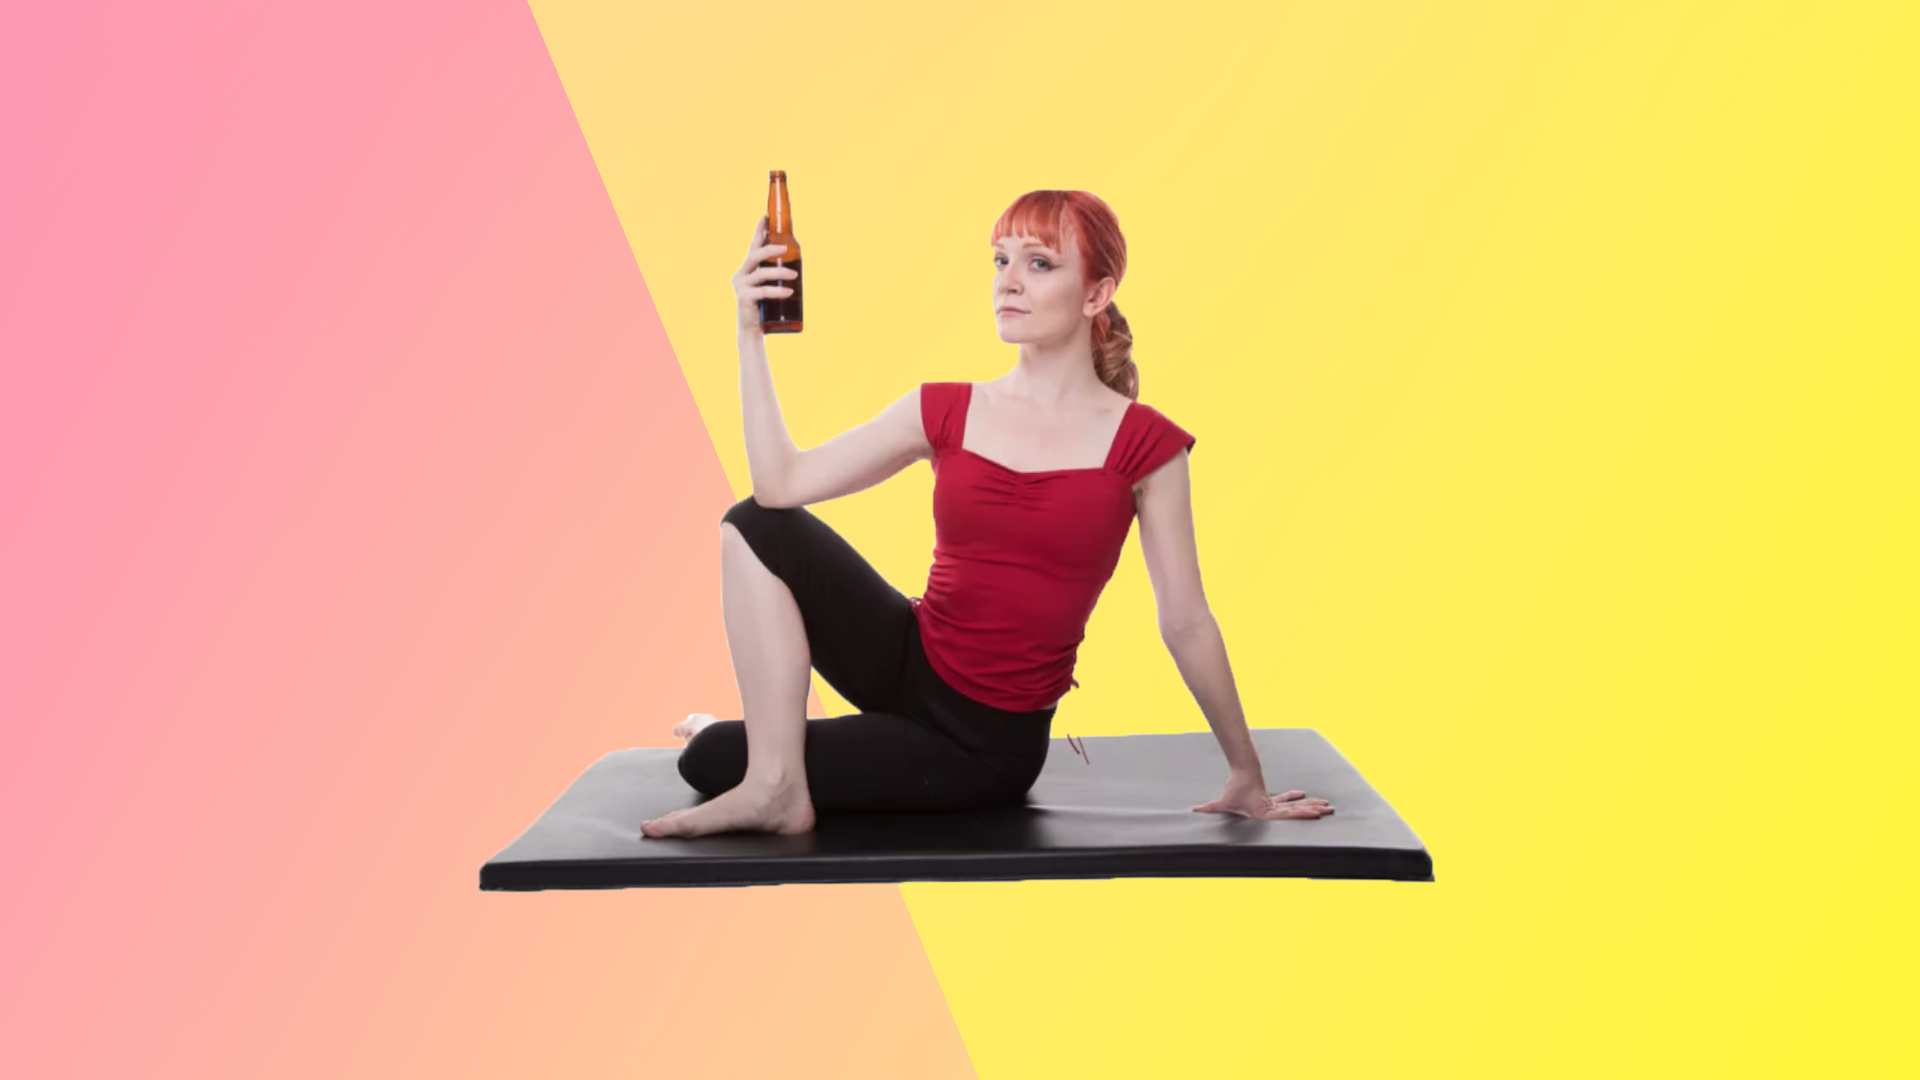 'Rage Yoga' Class Lets You Swear and Drink Beer to Get in the Yoga Flow